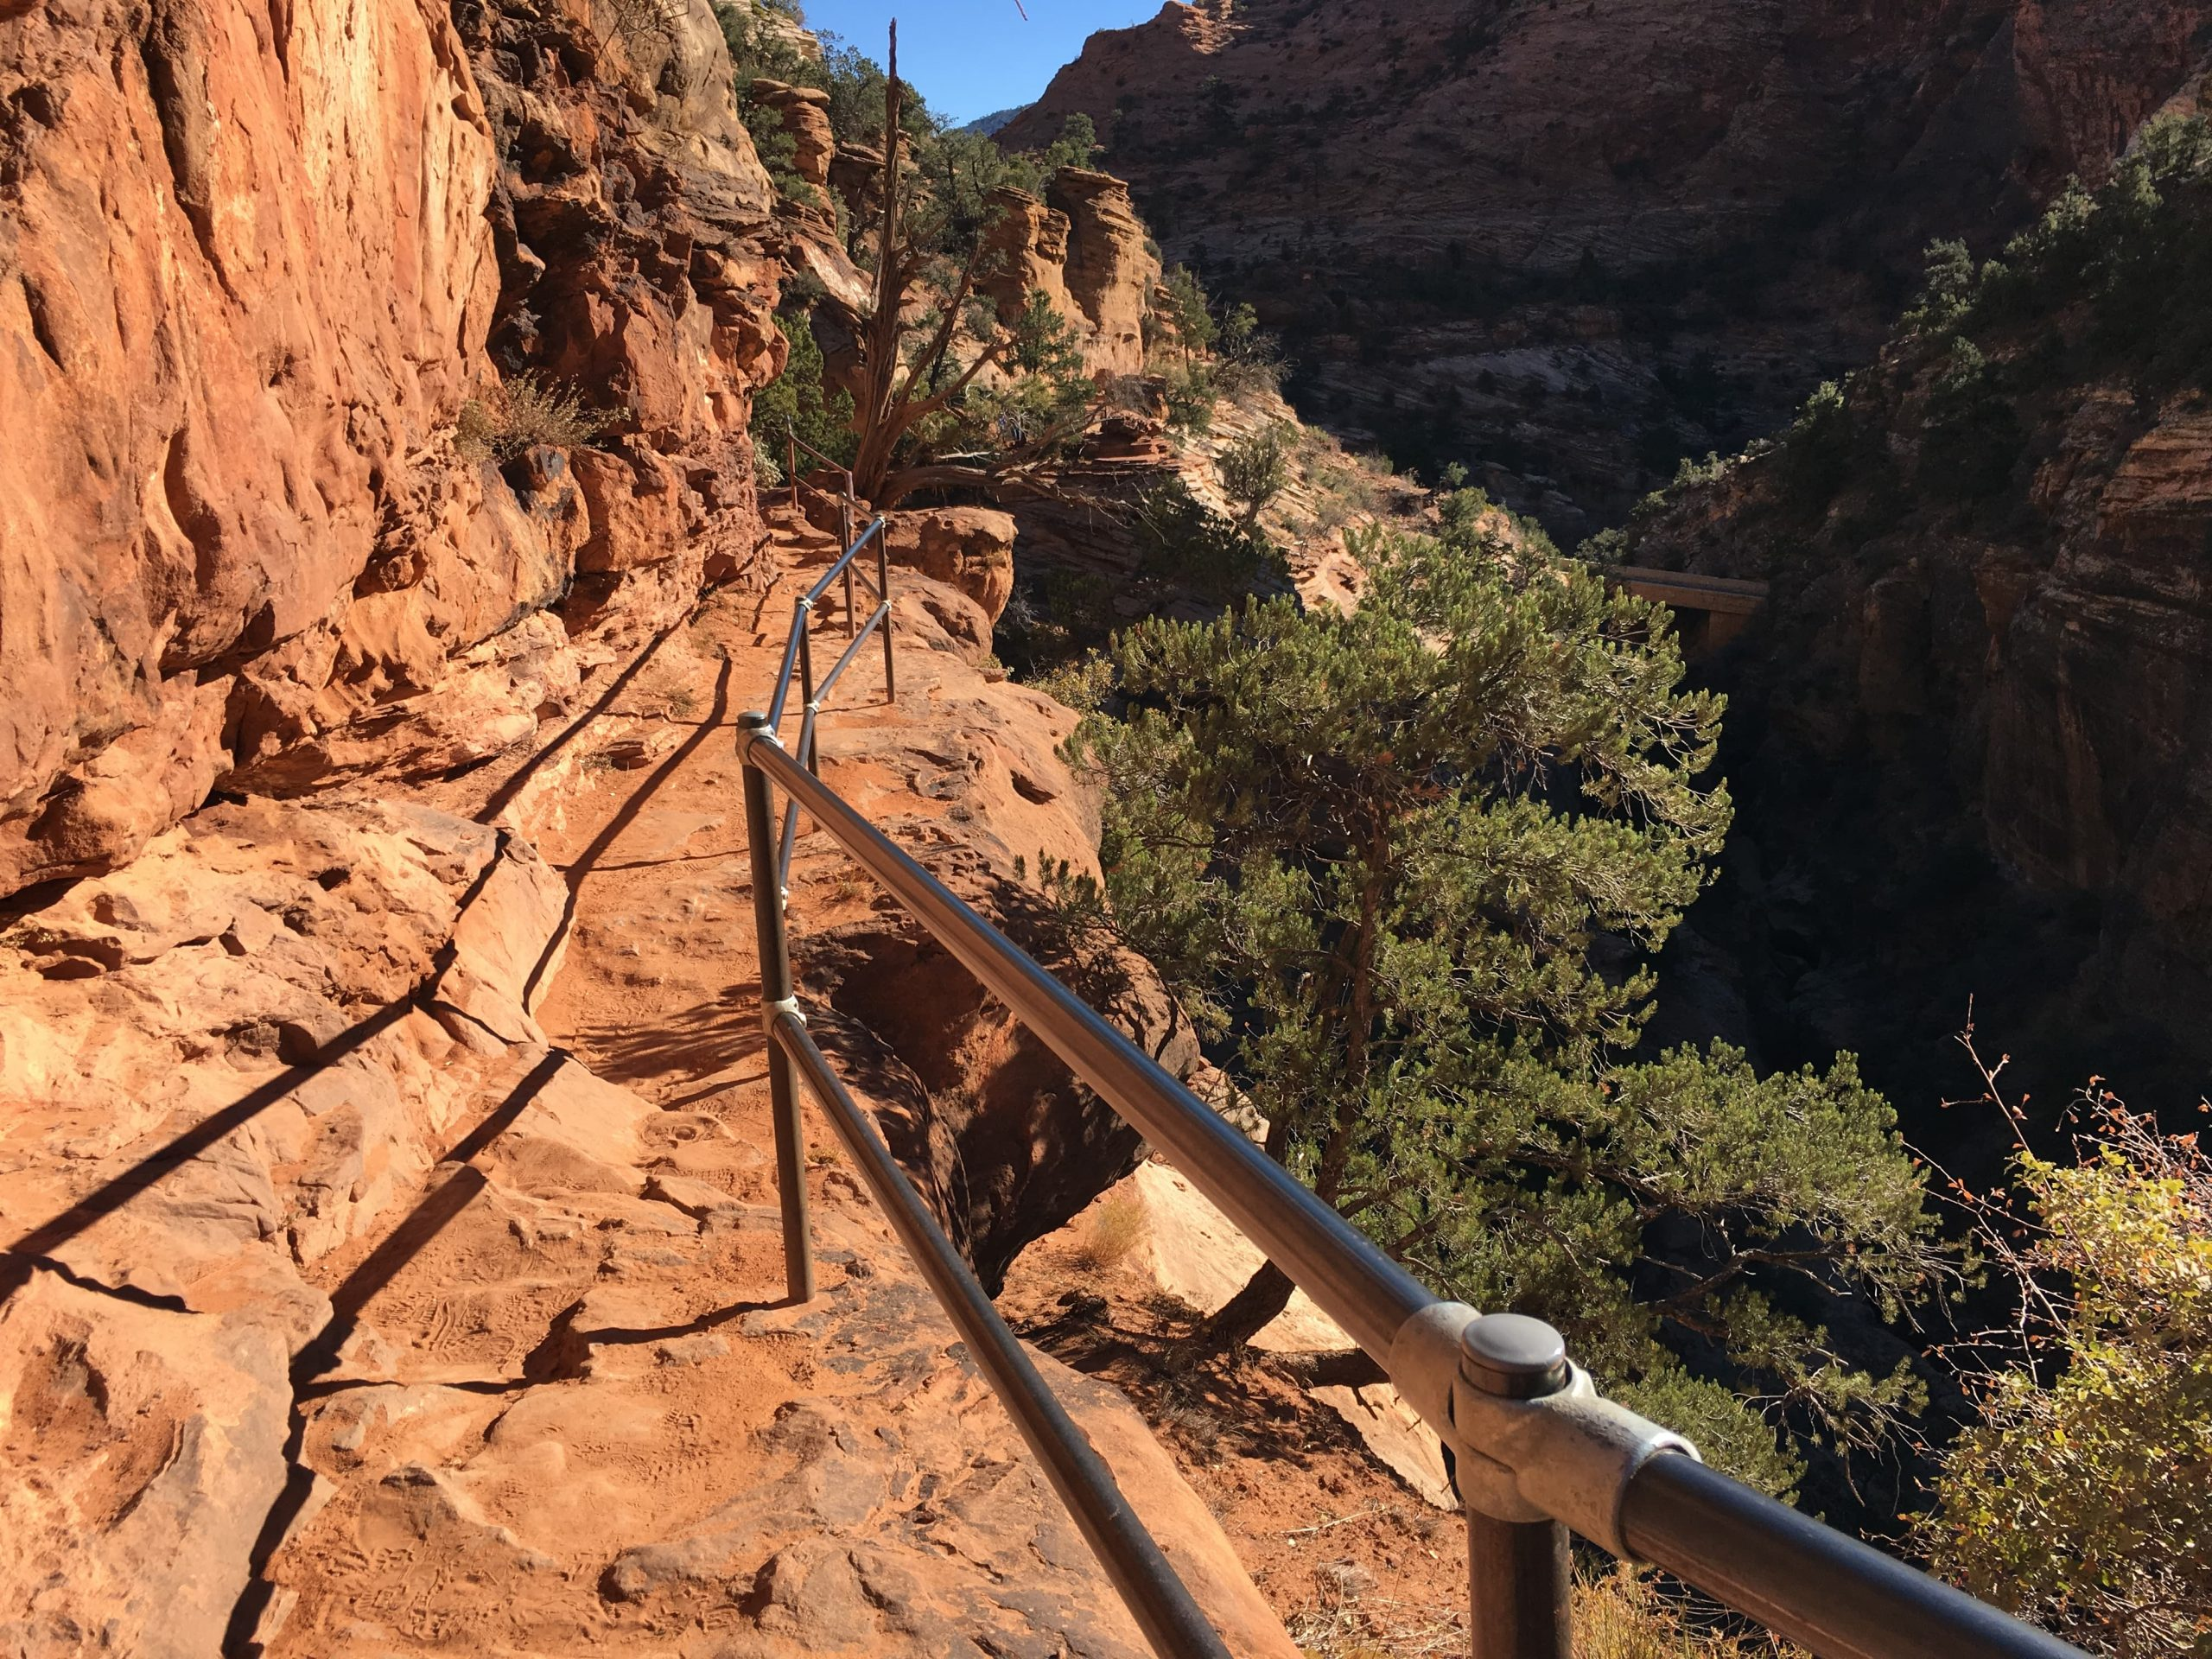 Canyon Overlook Trail at Zion National Park